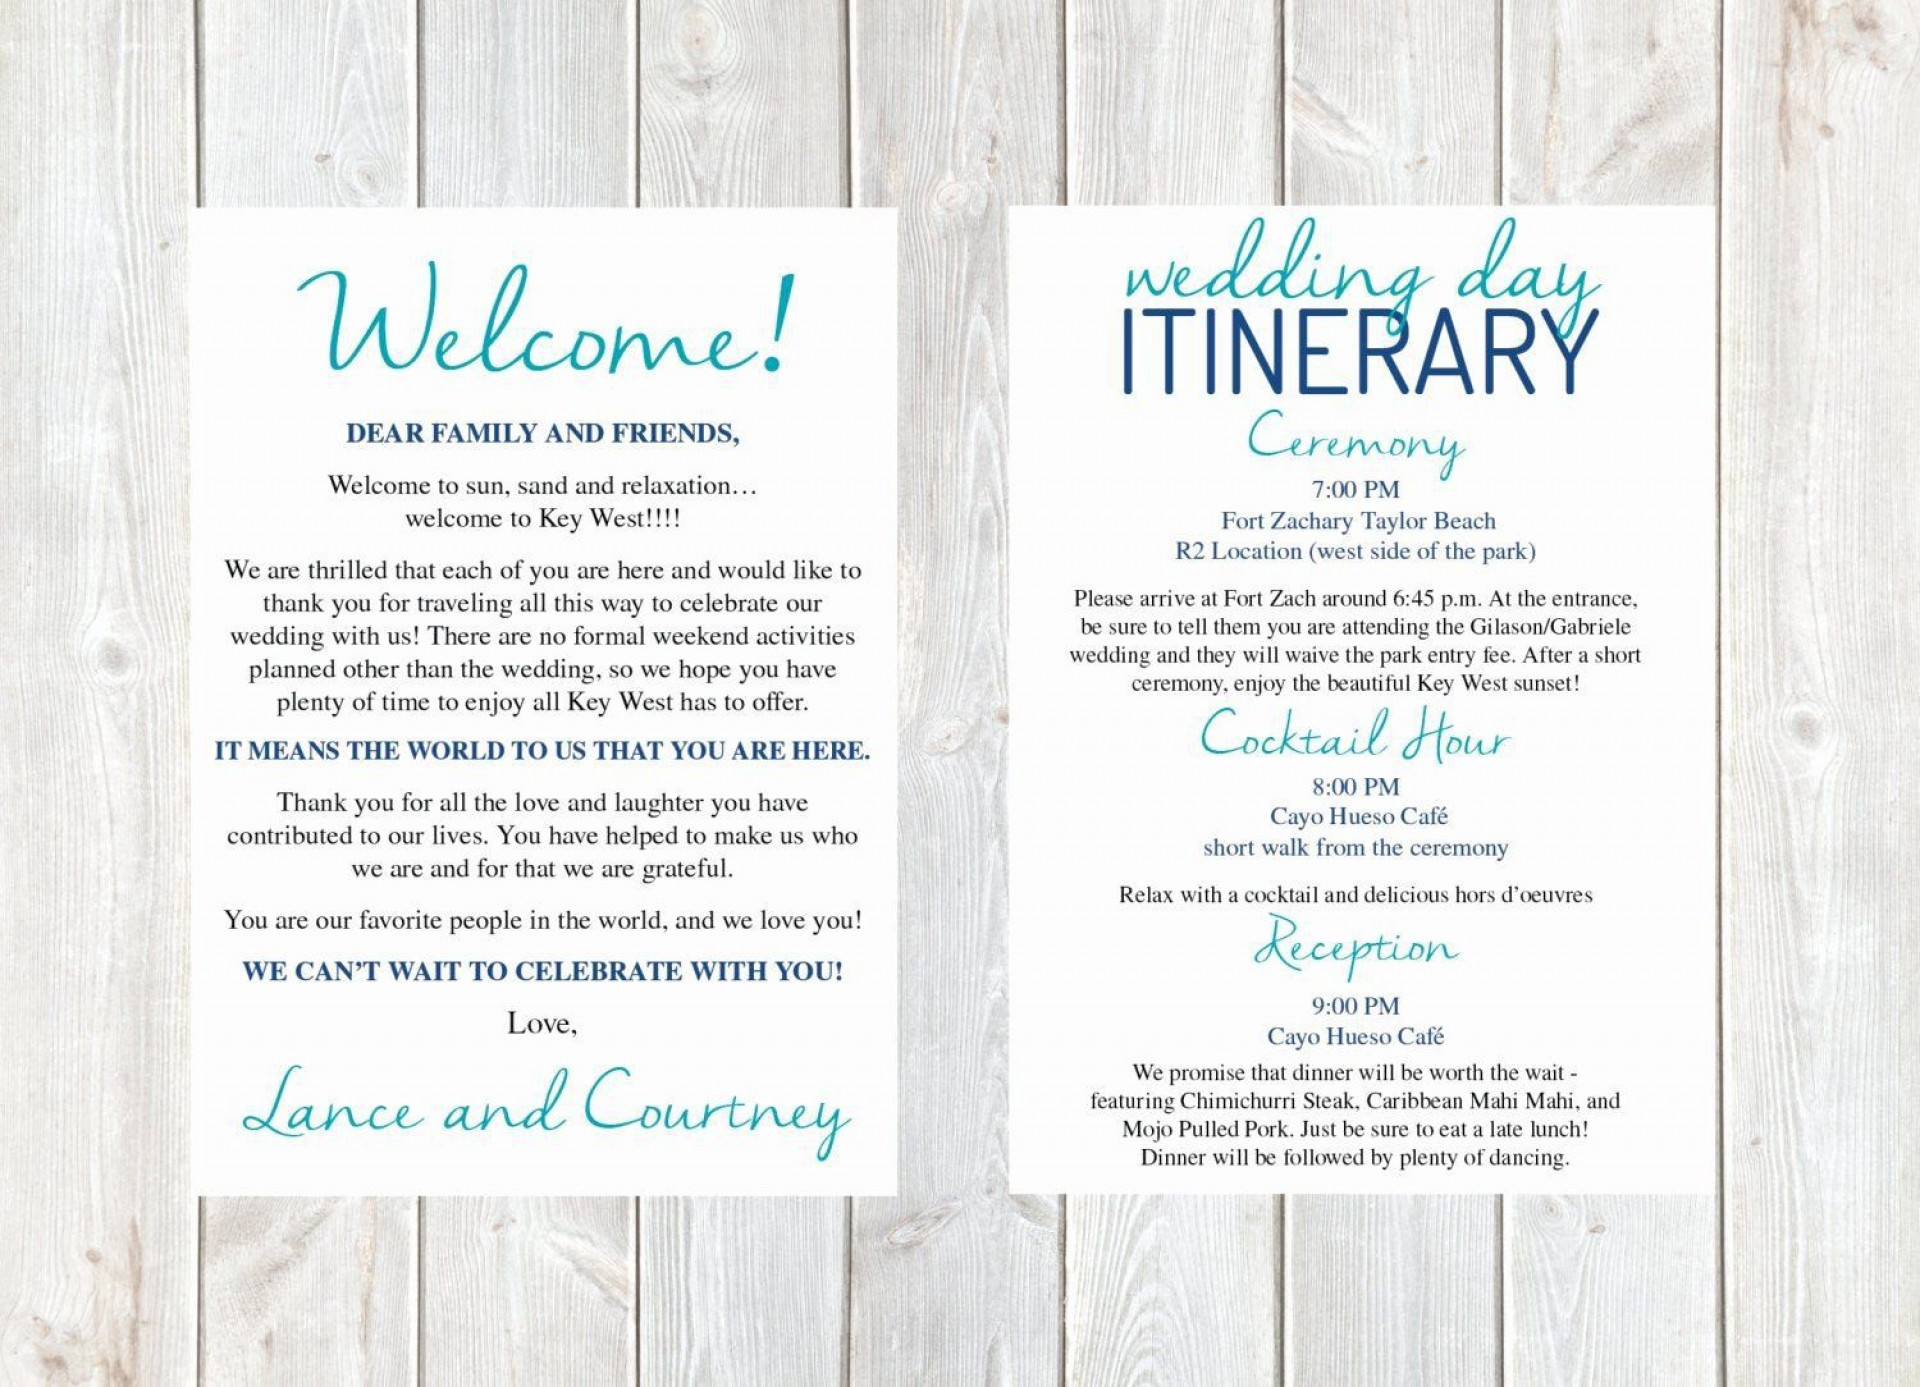 000 Fearsome Destination Wedding Welcome Letter Template Photo  And Itinerary1920